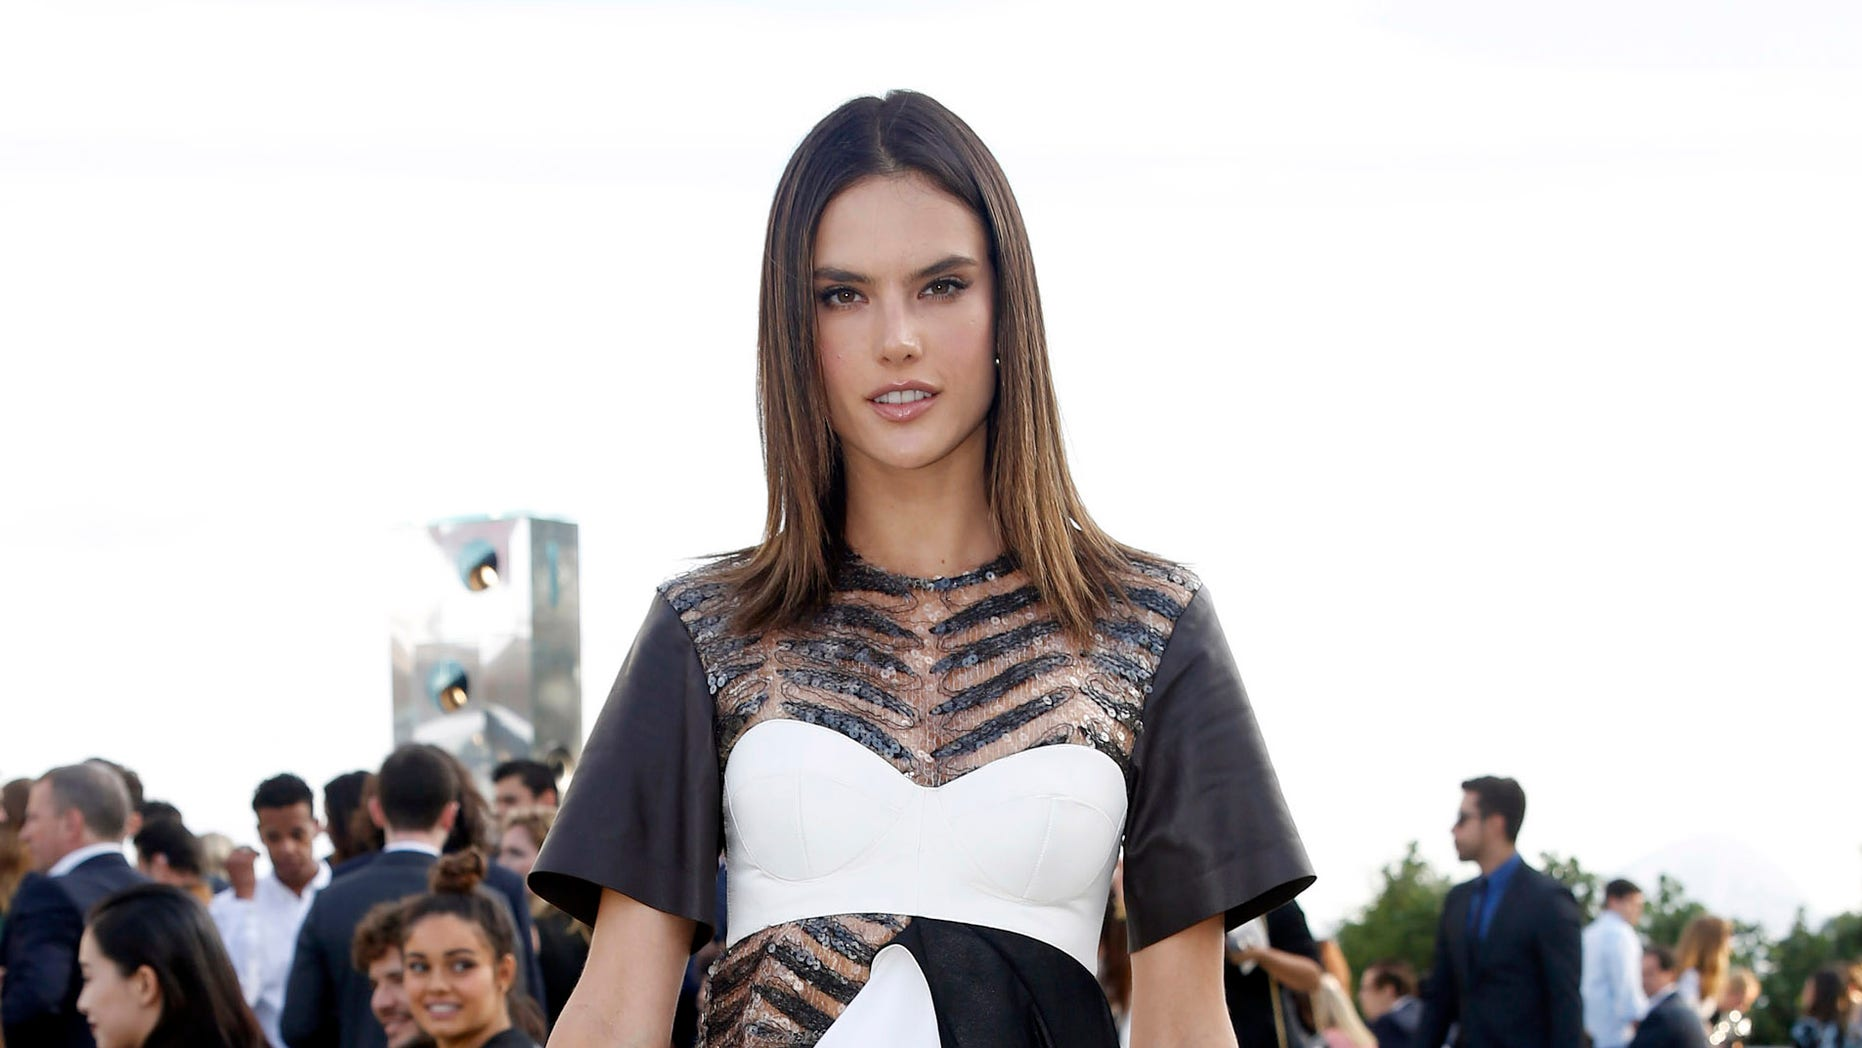 NITEROI, BRAZIL - MAY 28: Alessandra Ambrosio attends Louis Vuitton 2017 Cruise Collection at MAC Niter on May 28, 2016 in Niteroi, Brazil. (Photo by Vivian Fernandez/Getty Images)